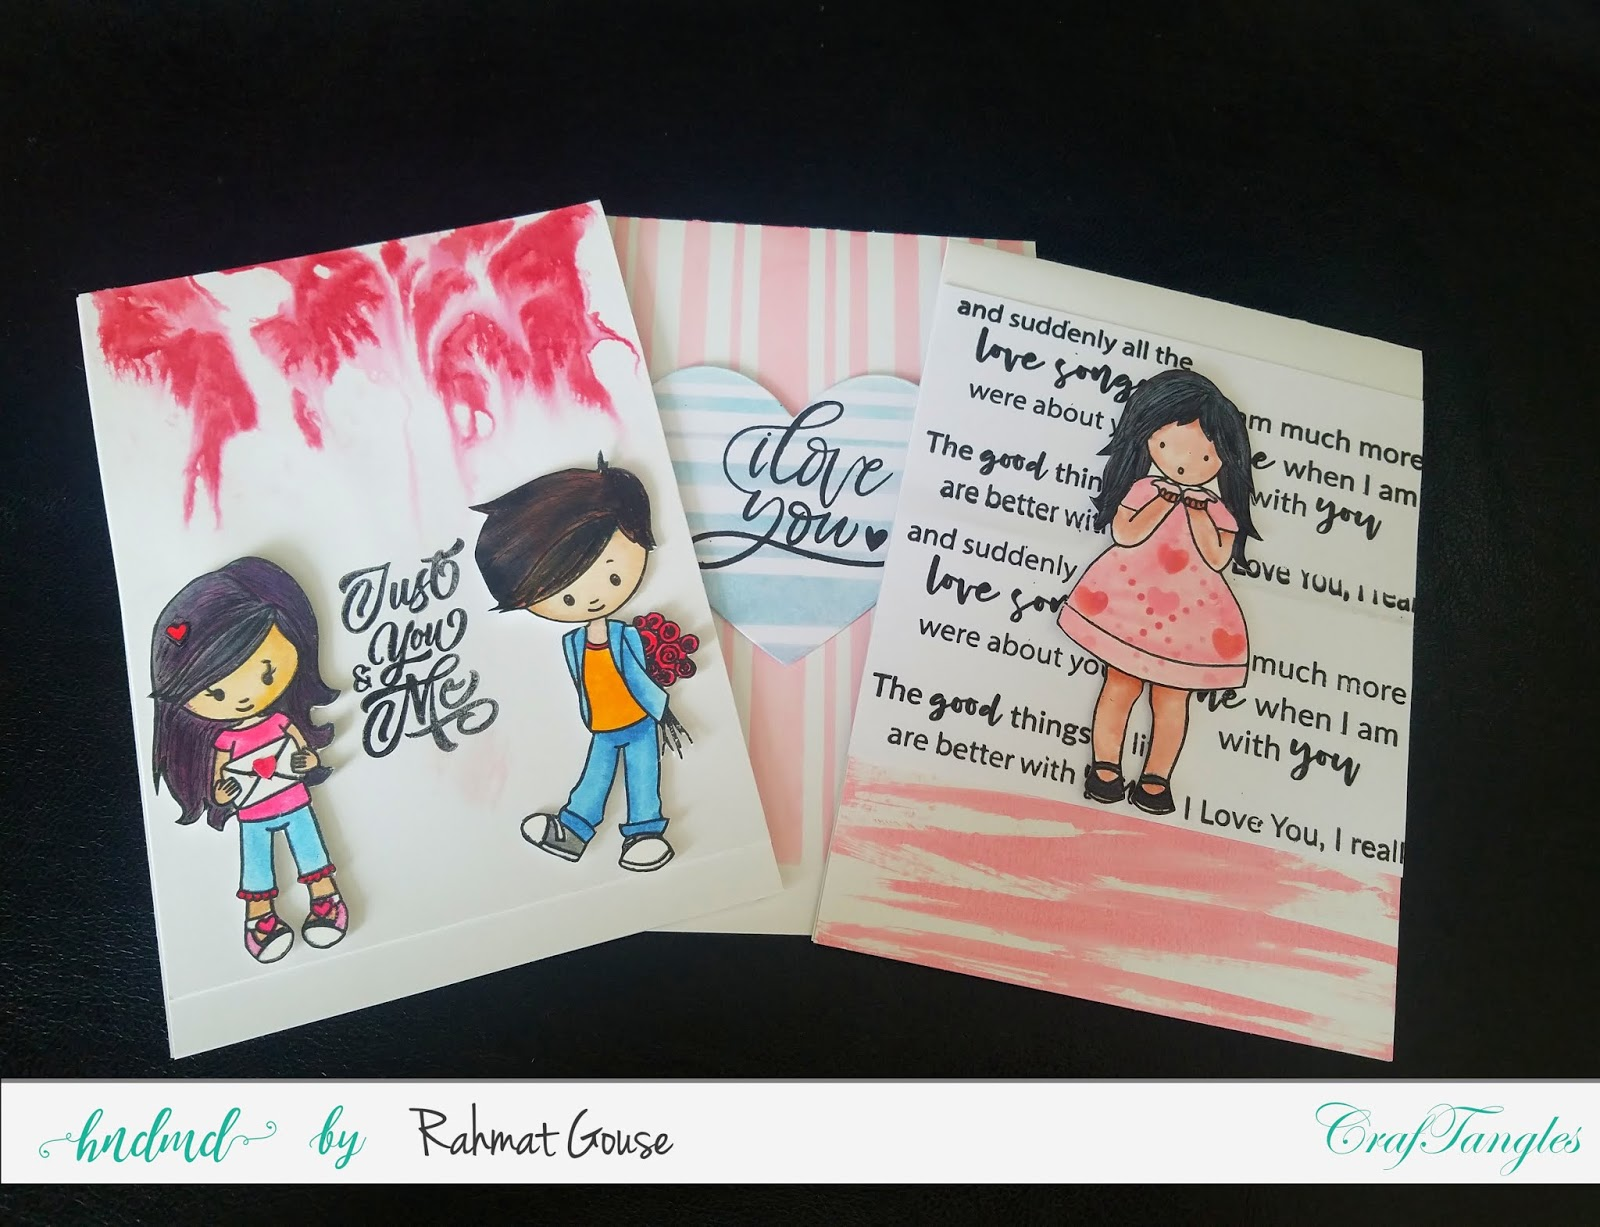 CrafTangles monthly challenge - Valentine's cards - Rahmat 5